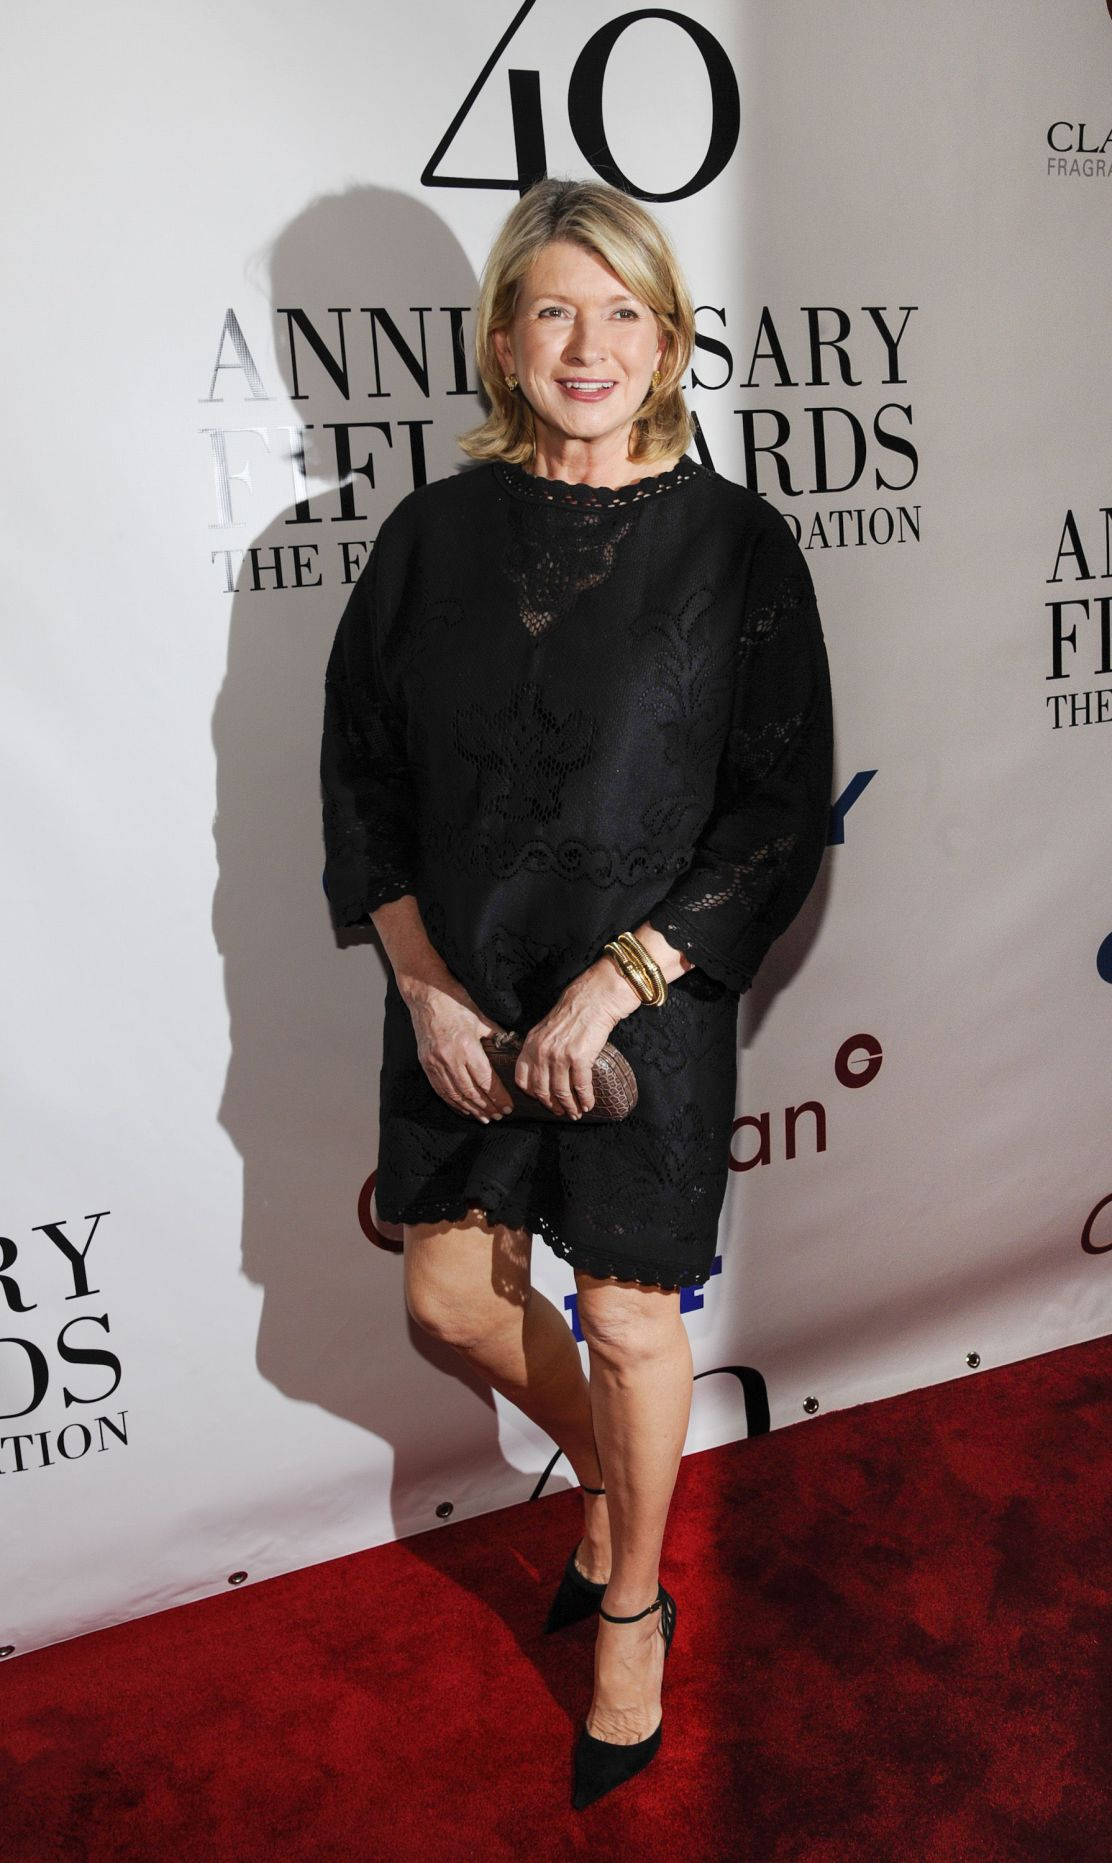 Martha Stewart becomes non-executive chairman of company she founded